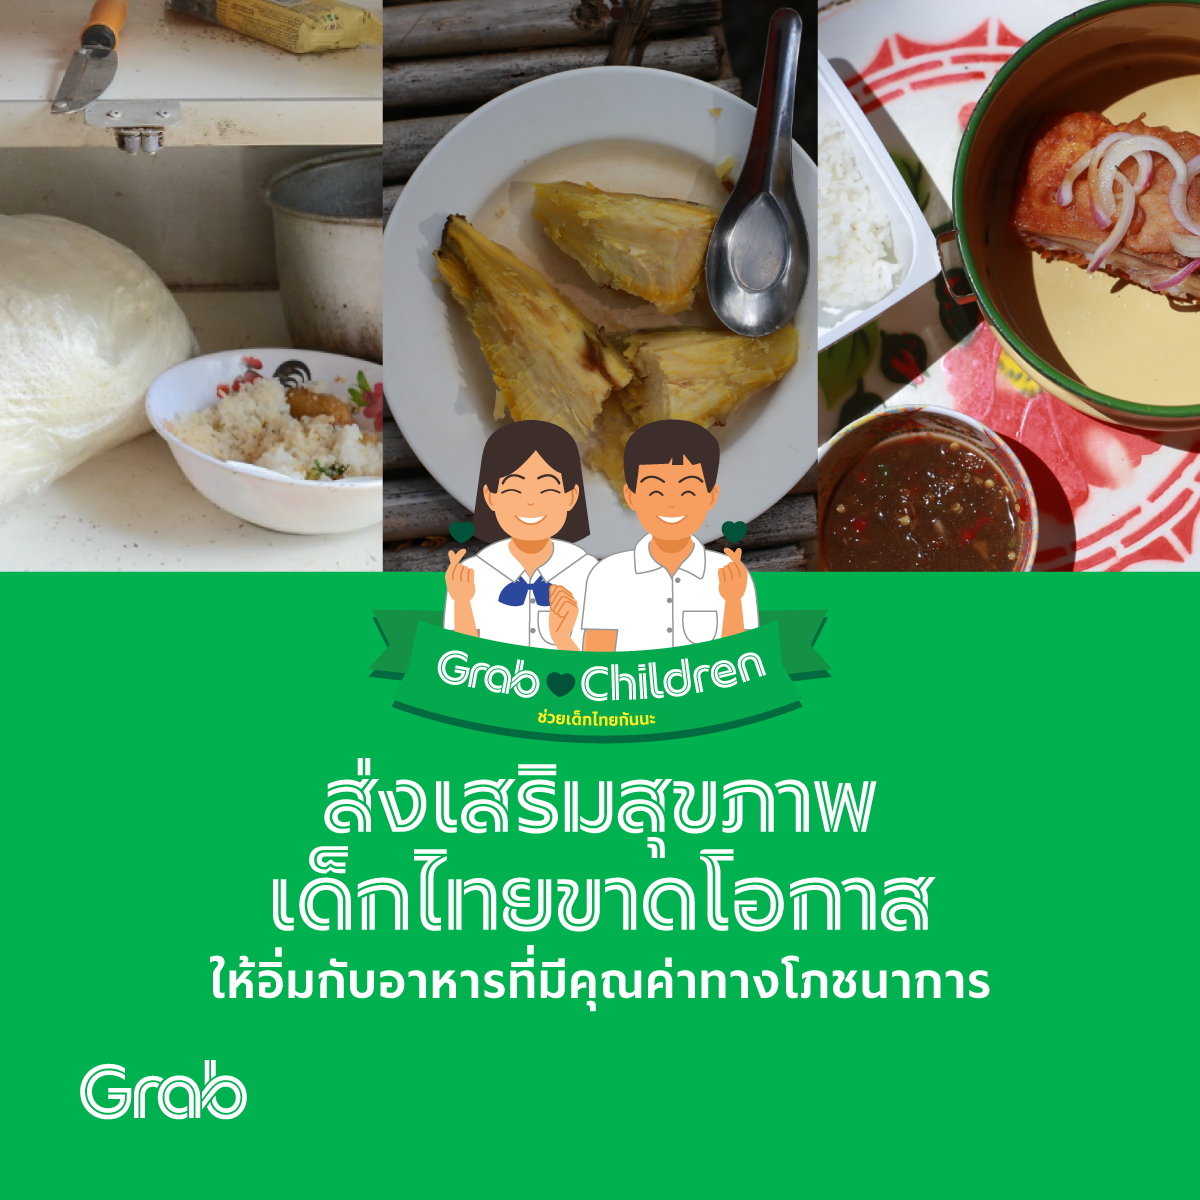 buy food for children with Grab